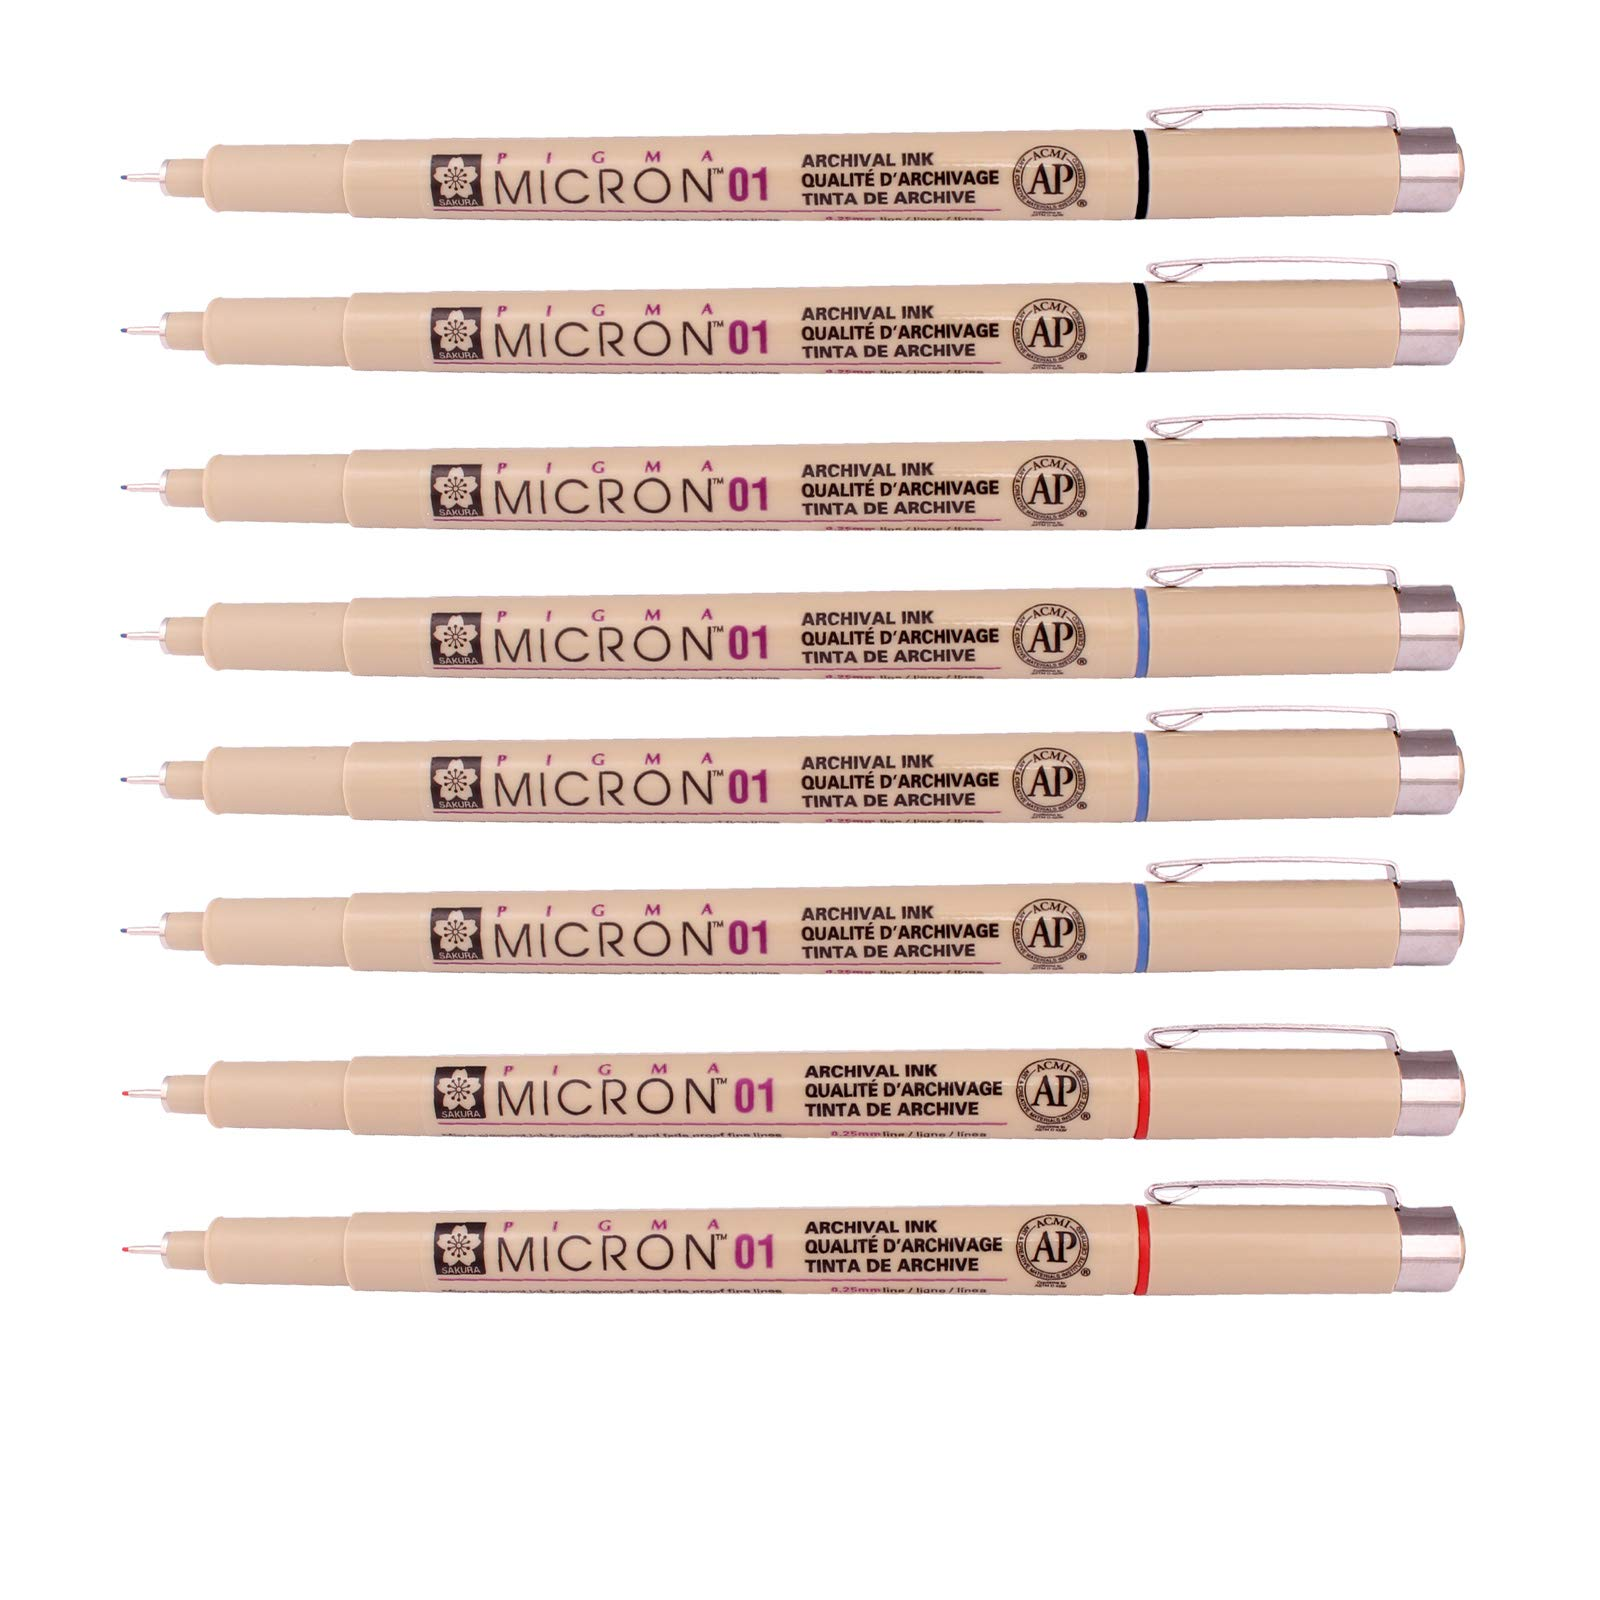 Sakura Pigma Micron Fine Line Pen High Light and Soft Head Pen Manga Drawing- Assorted 8 Pens Set (Assorted Colors, 01-8 Pens)